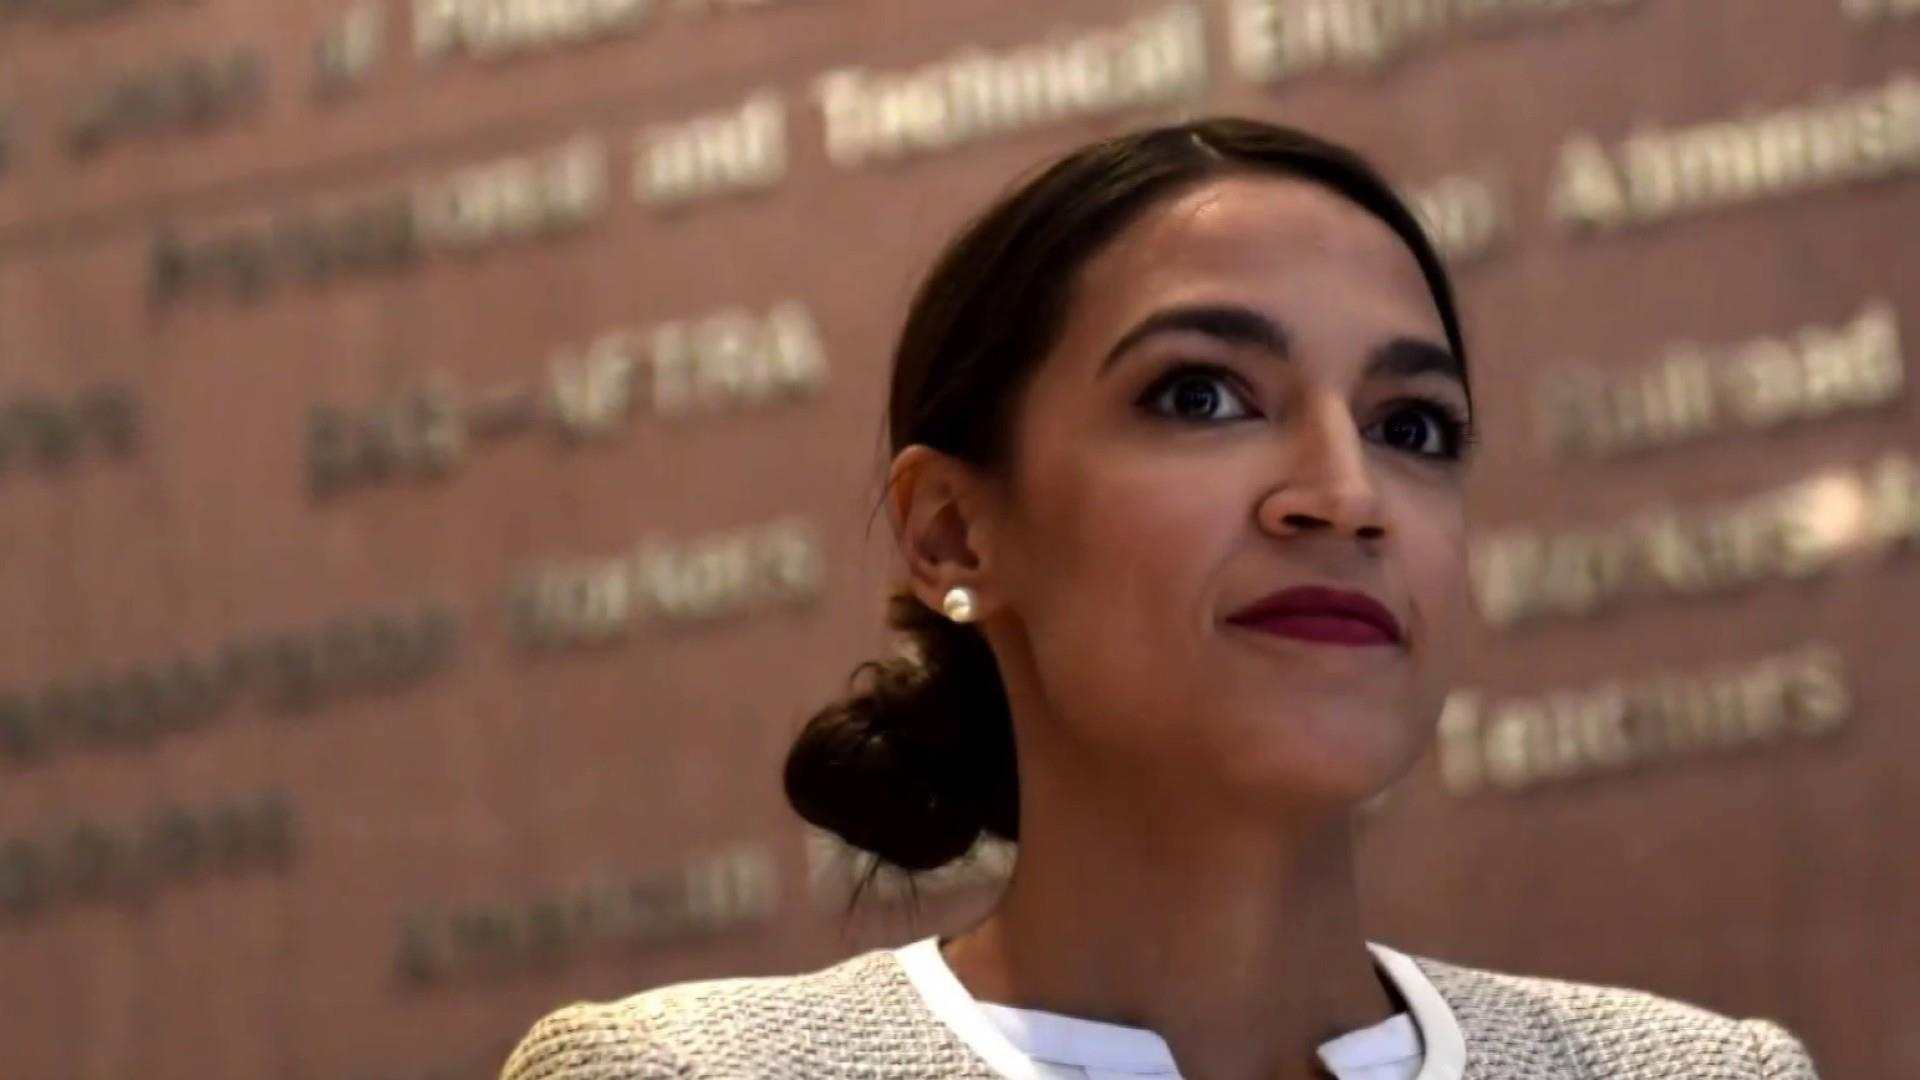 Trump allies & FOX News targeting Rep. Alexandria Ocasio-Cortez